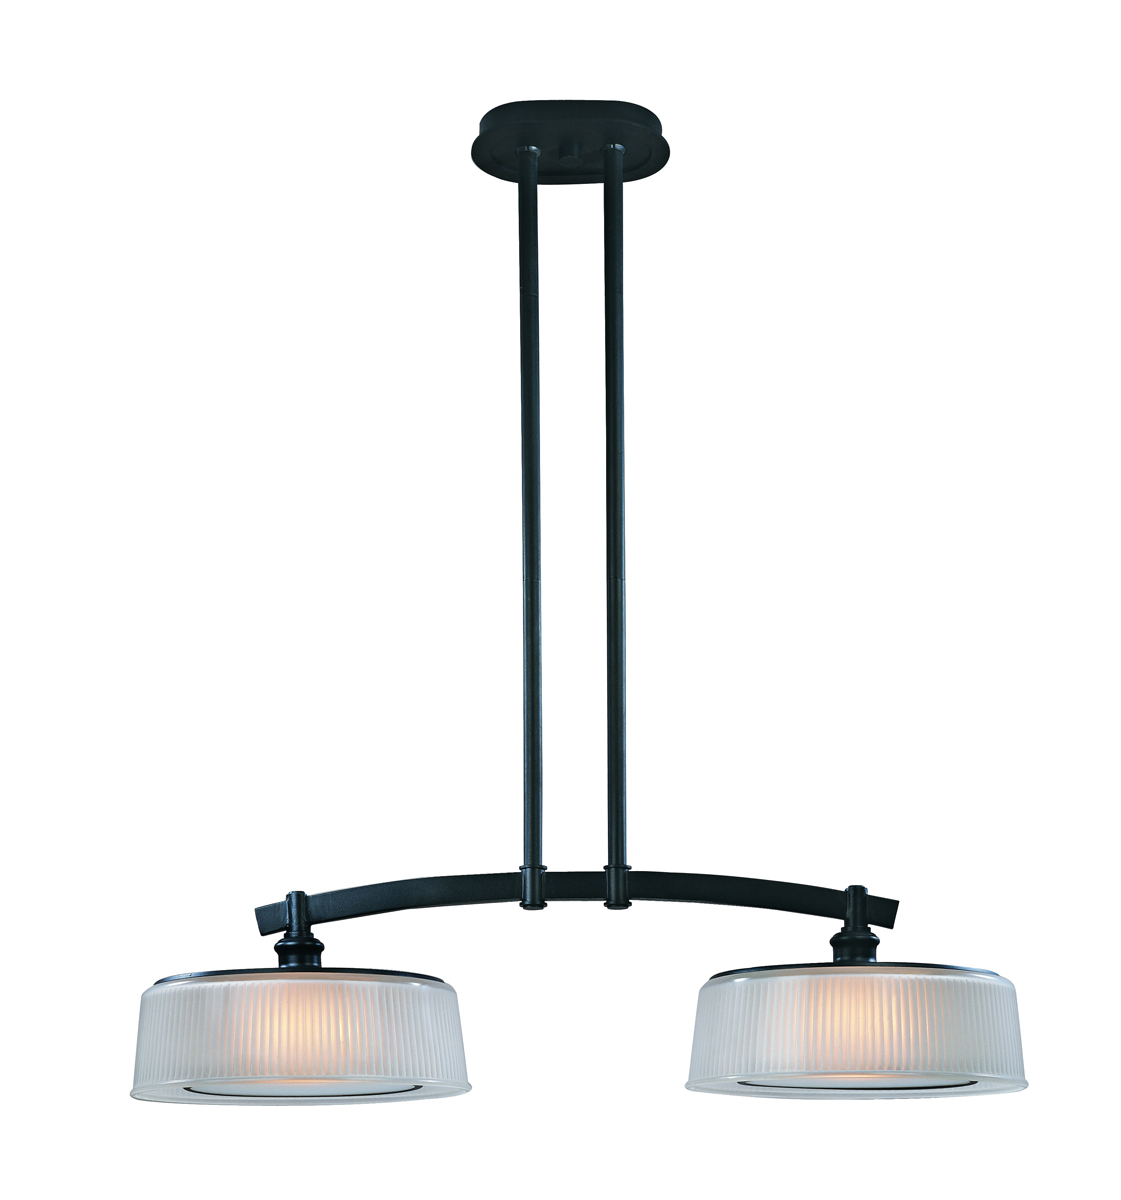 Plafondbeugel Lamp Troy Lighting F2239 Finley 2 Light Island Pendant